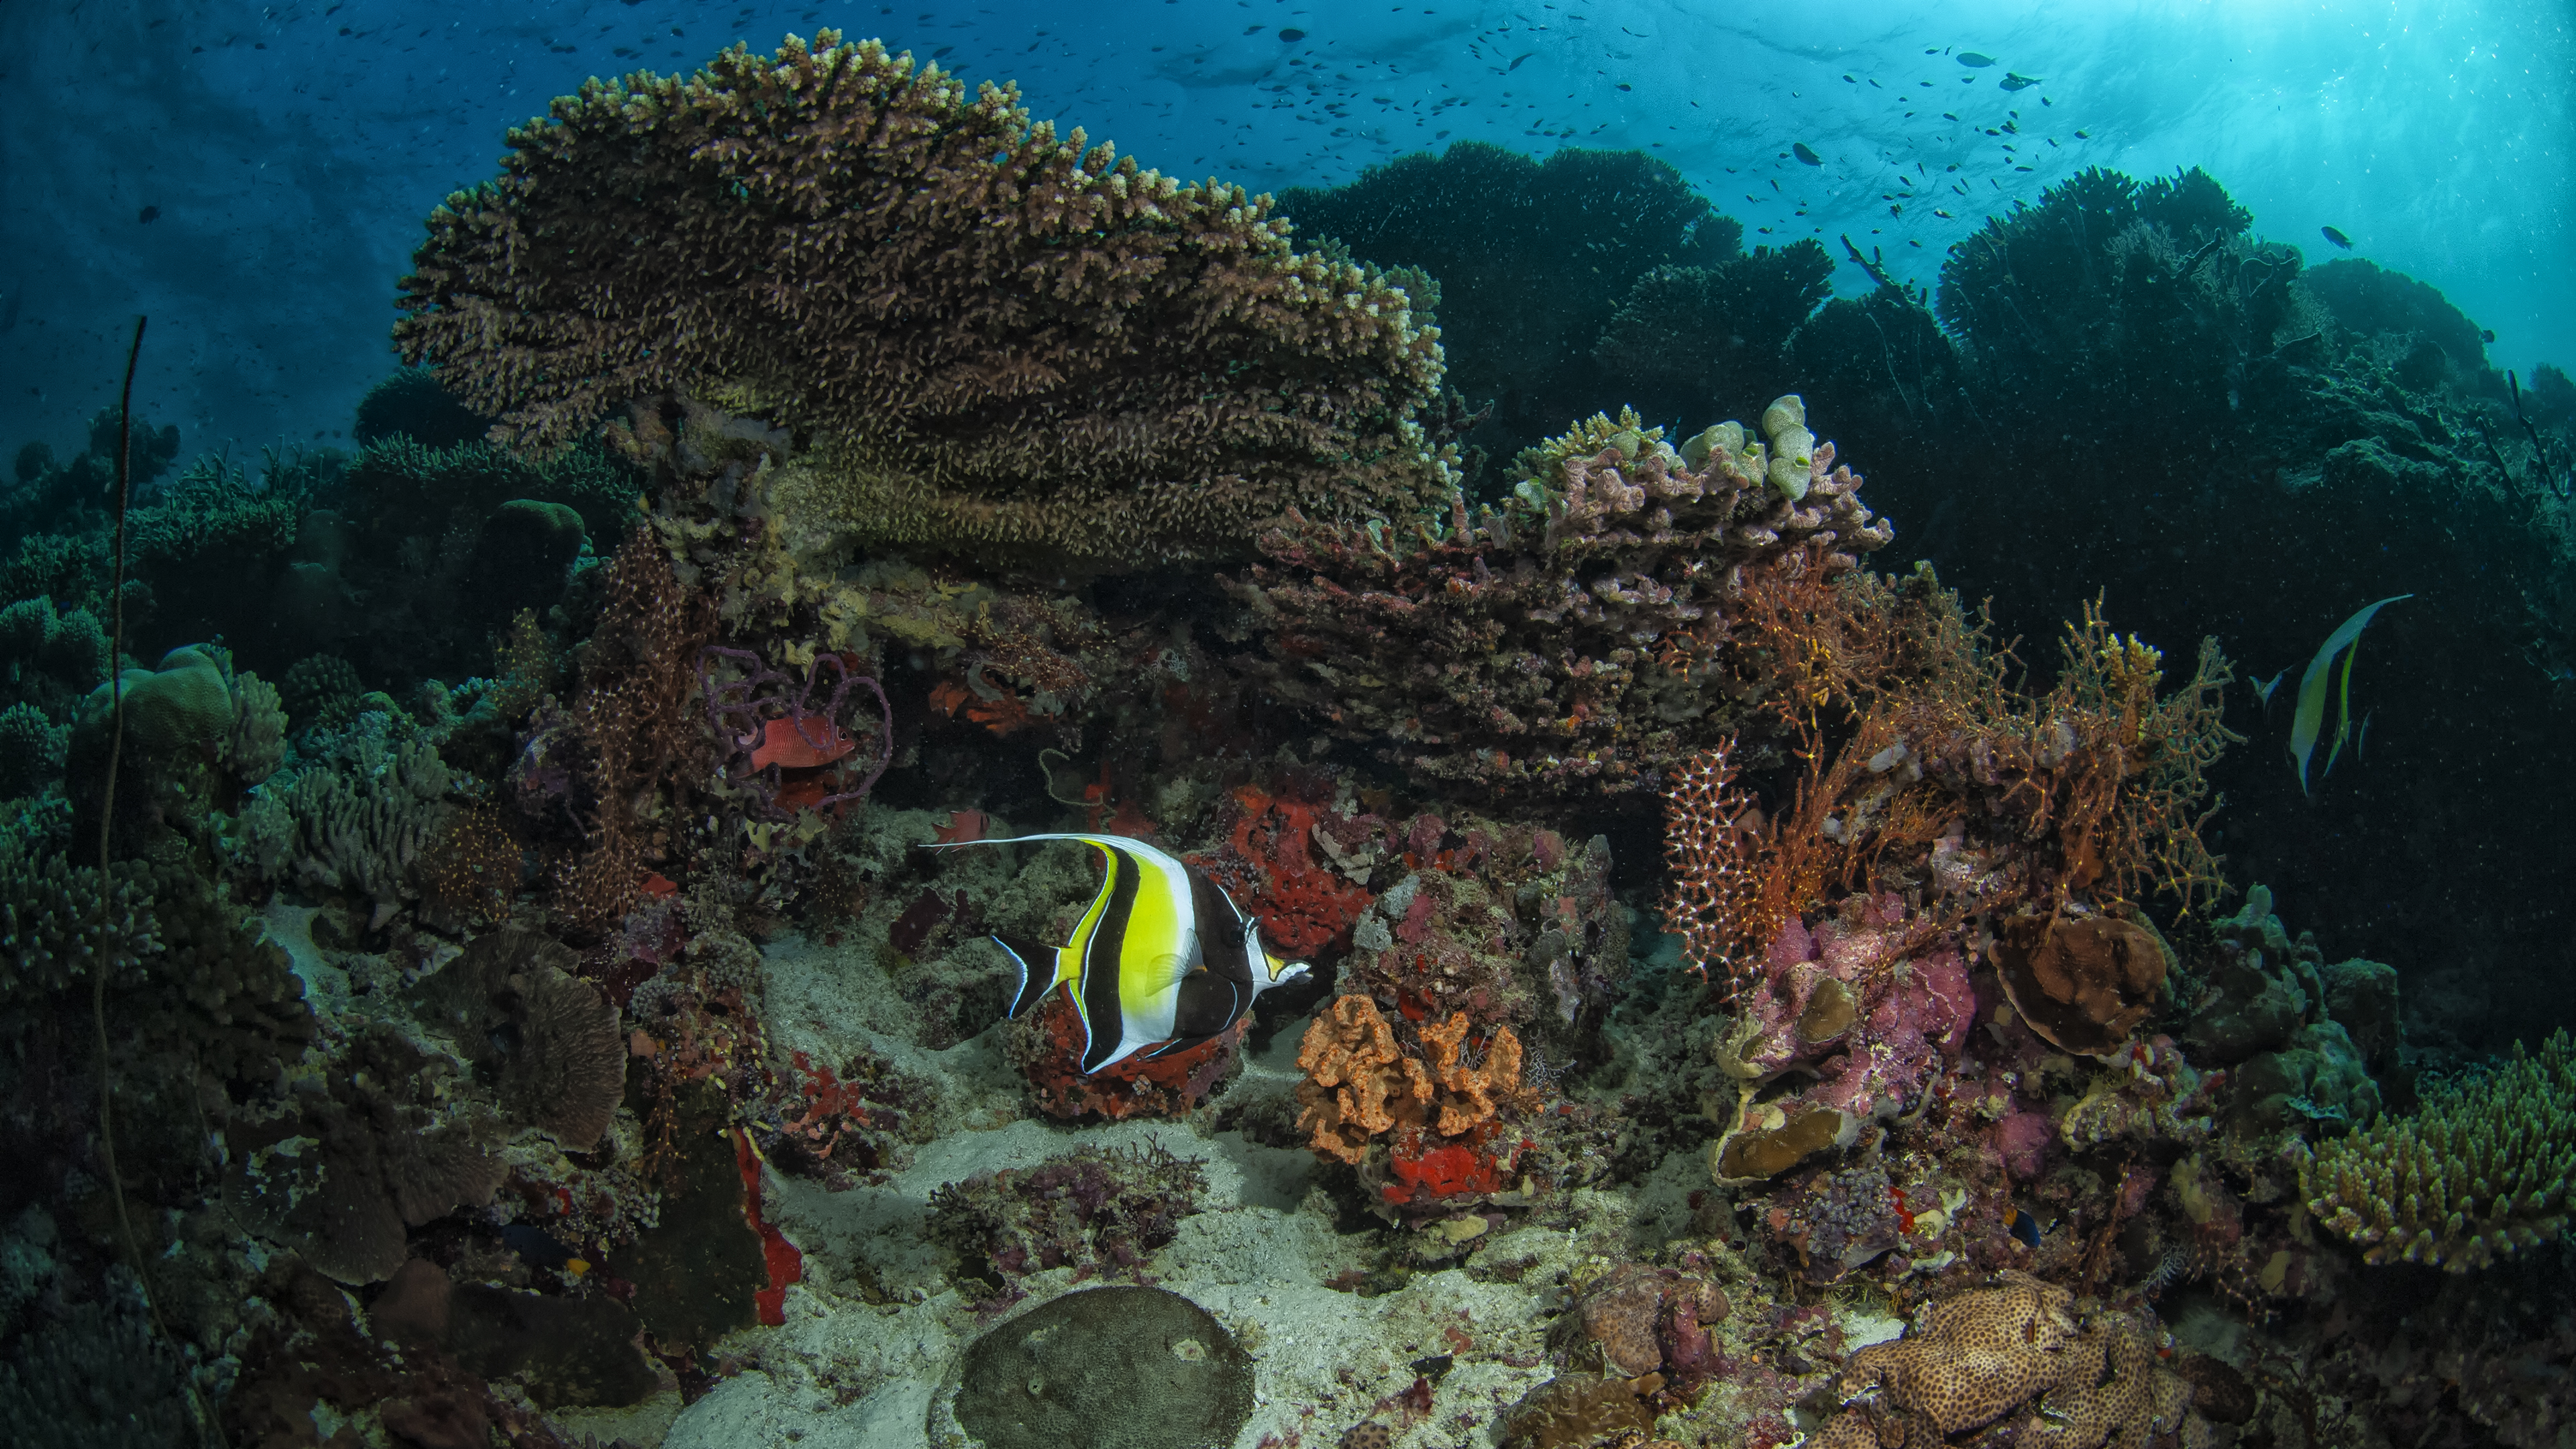 Moorish Idol in the Red Sea